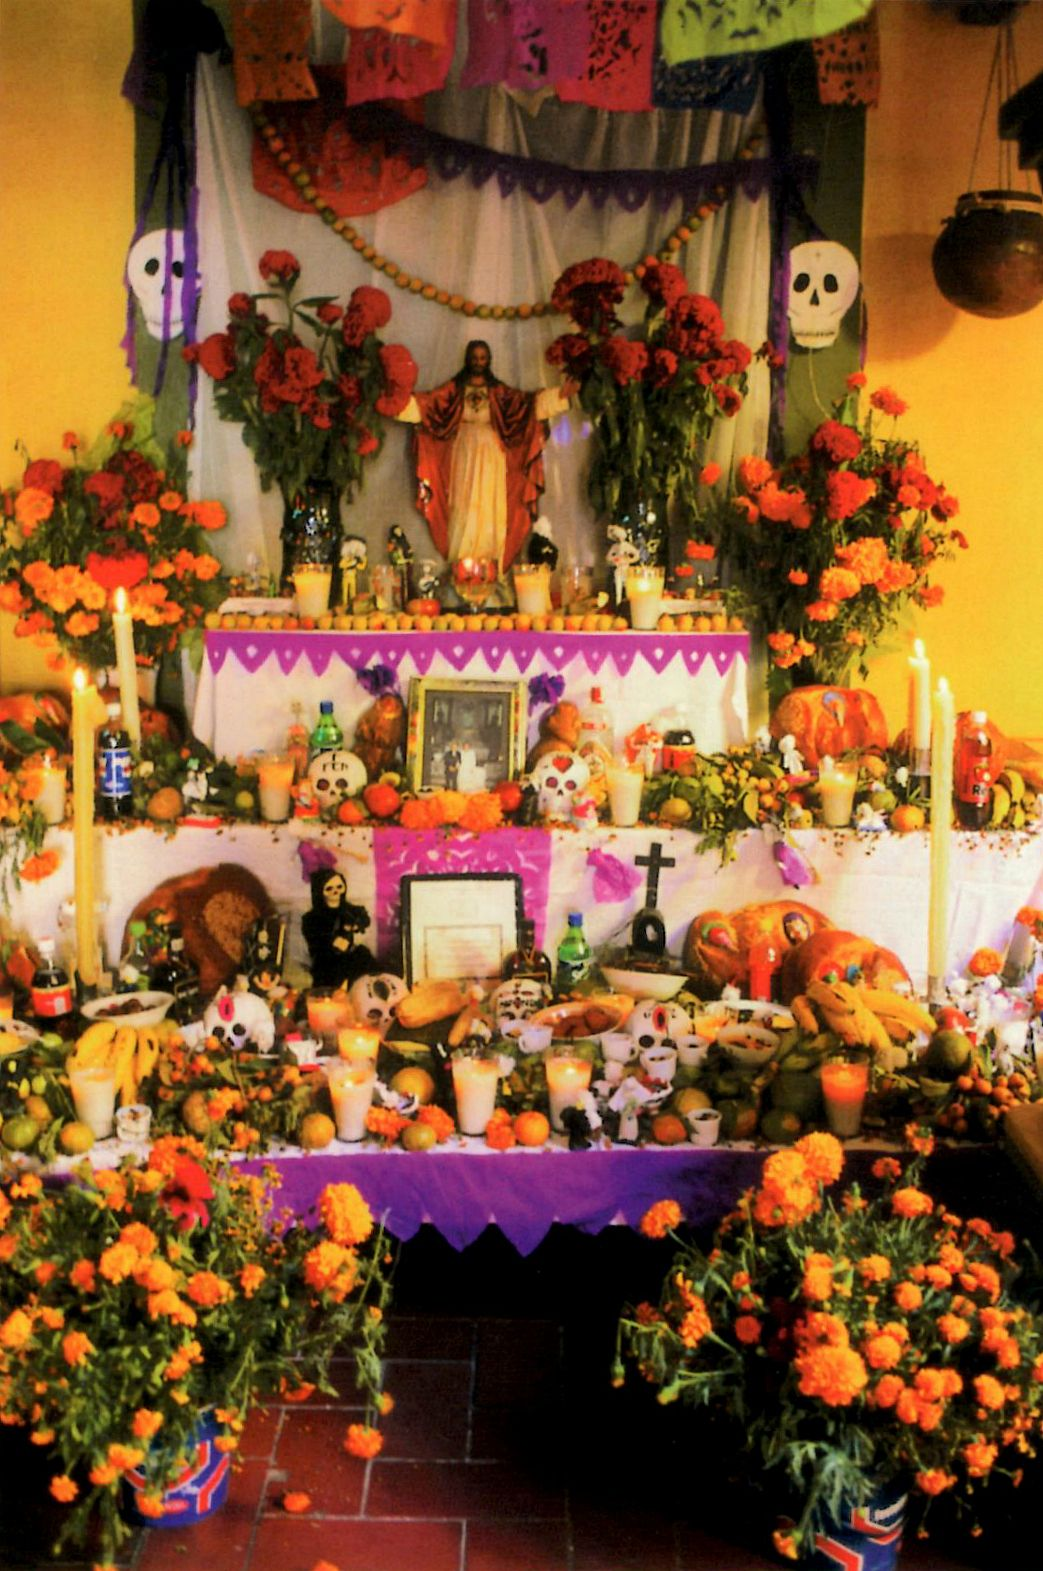 Dia del los Muertos Altar - Jon Lander - postcard - can't remember if I got this in Mexico or at the Mattie Rhodes Center in KC on the West Side